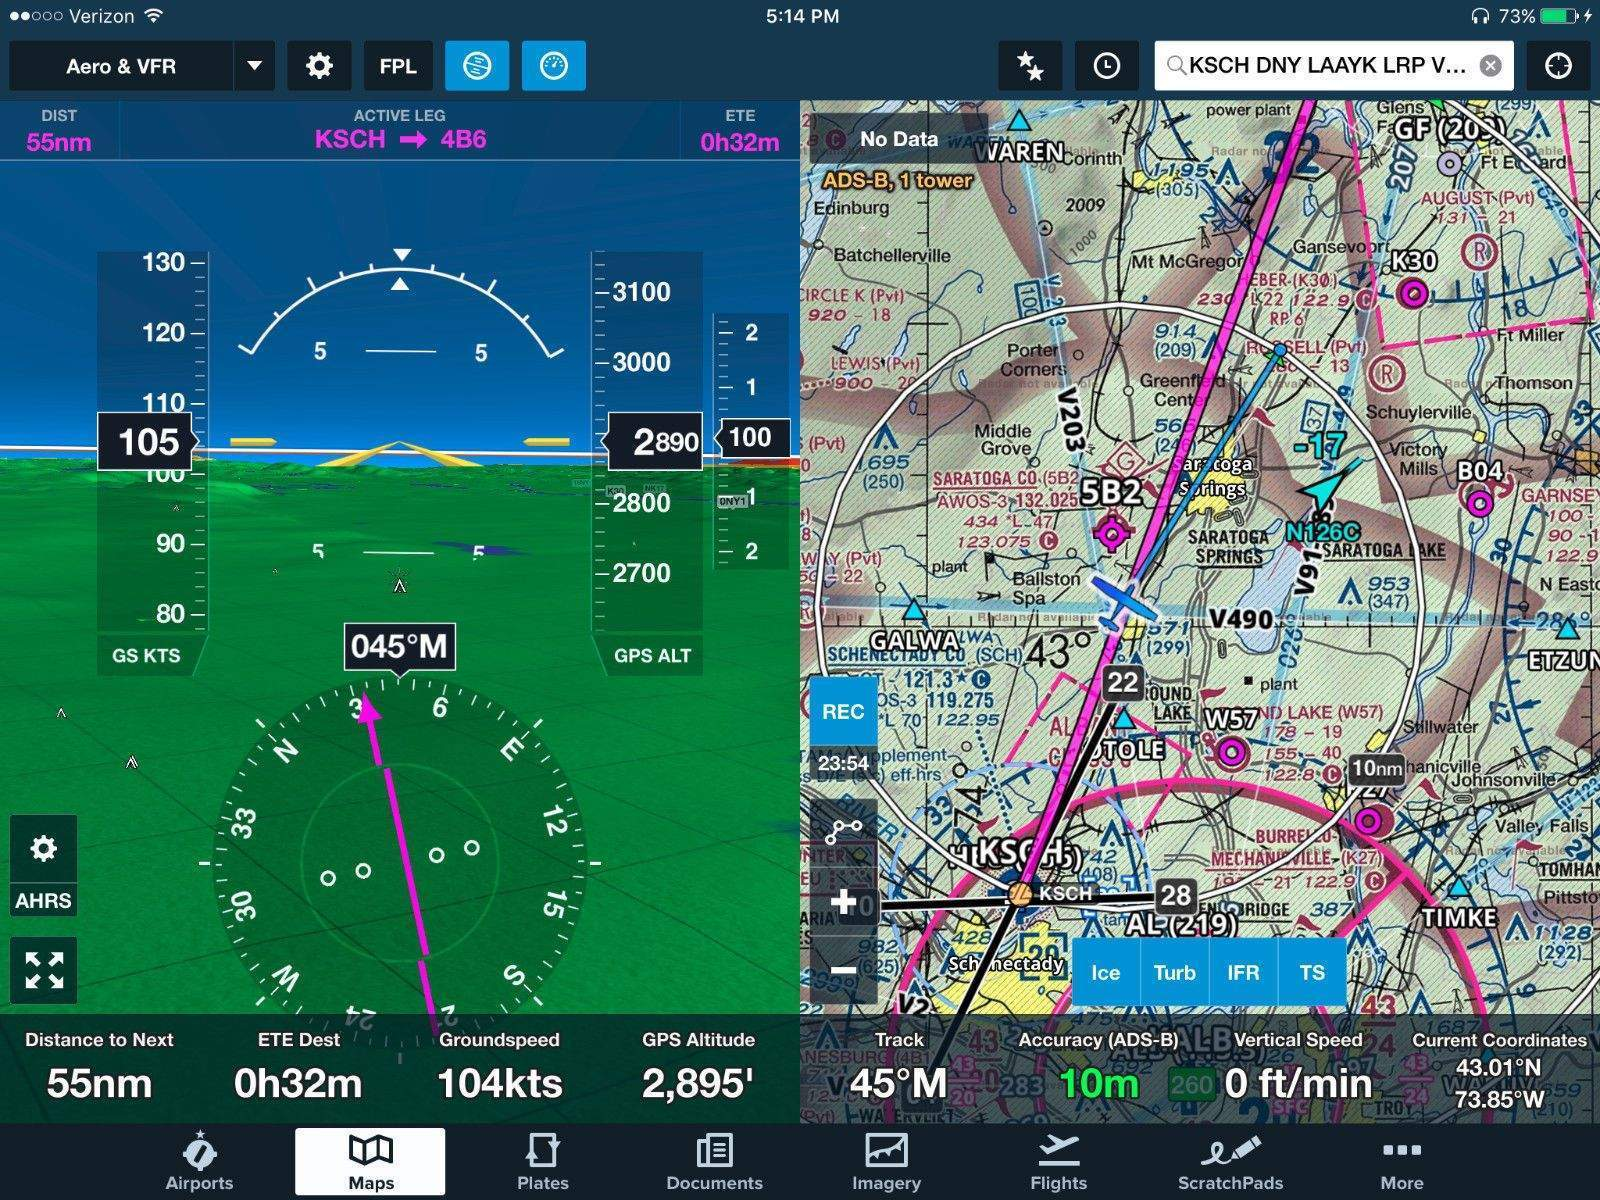 stratux-ads-b-dual-band-receiver-aviation-weather-and-traffic-ahrs-waas-gps